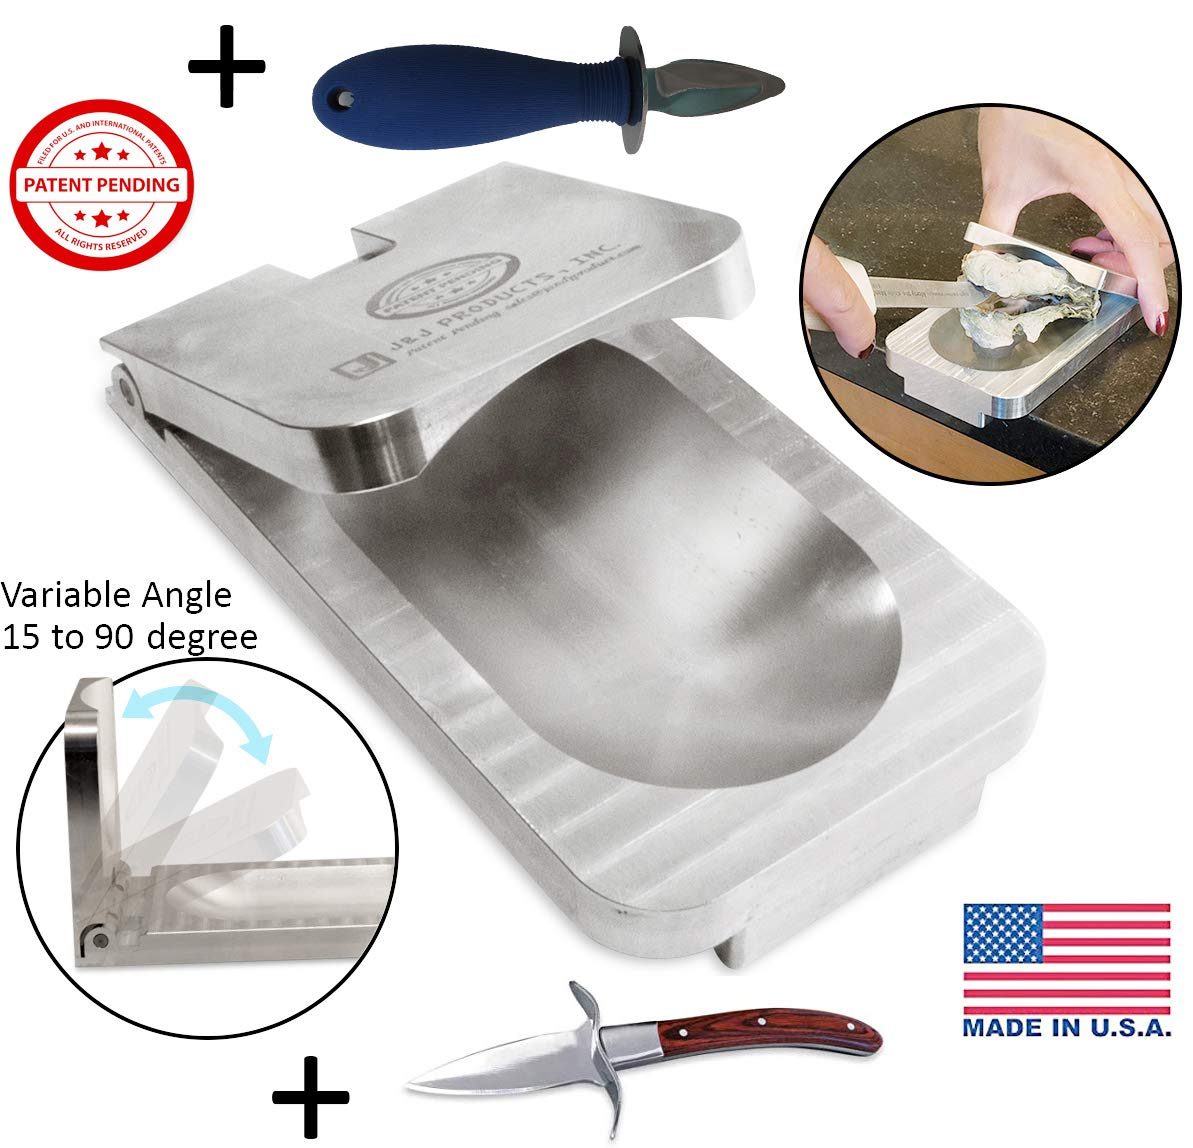 [ J&J Products ] The EZ - Oyster Variable Angle Opener Shucking Tool with Oyster Shucking Knife with Wood Handle & Oyster Shucking Knife with Plastic Handle